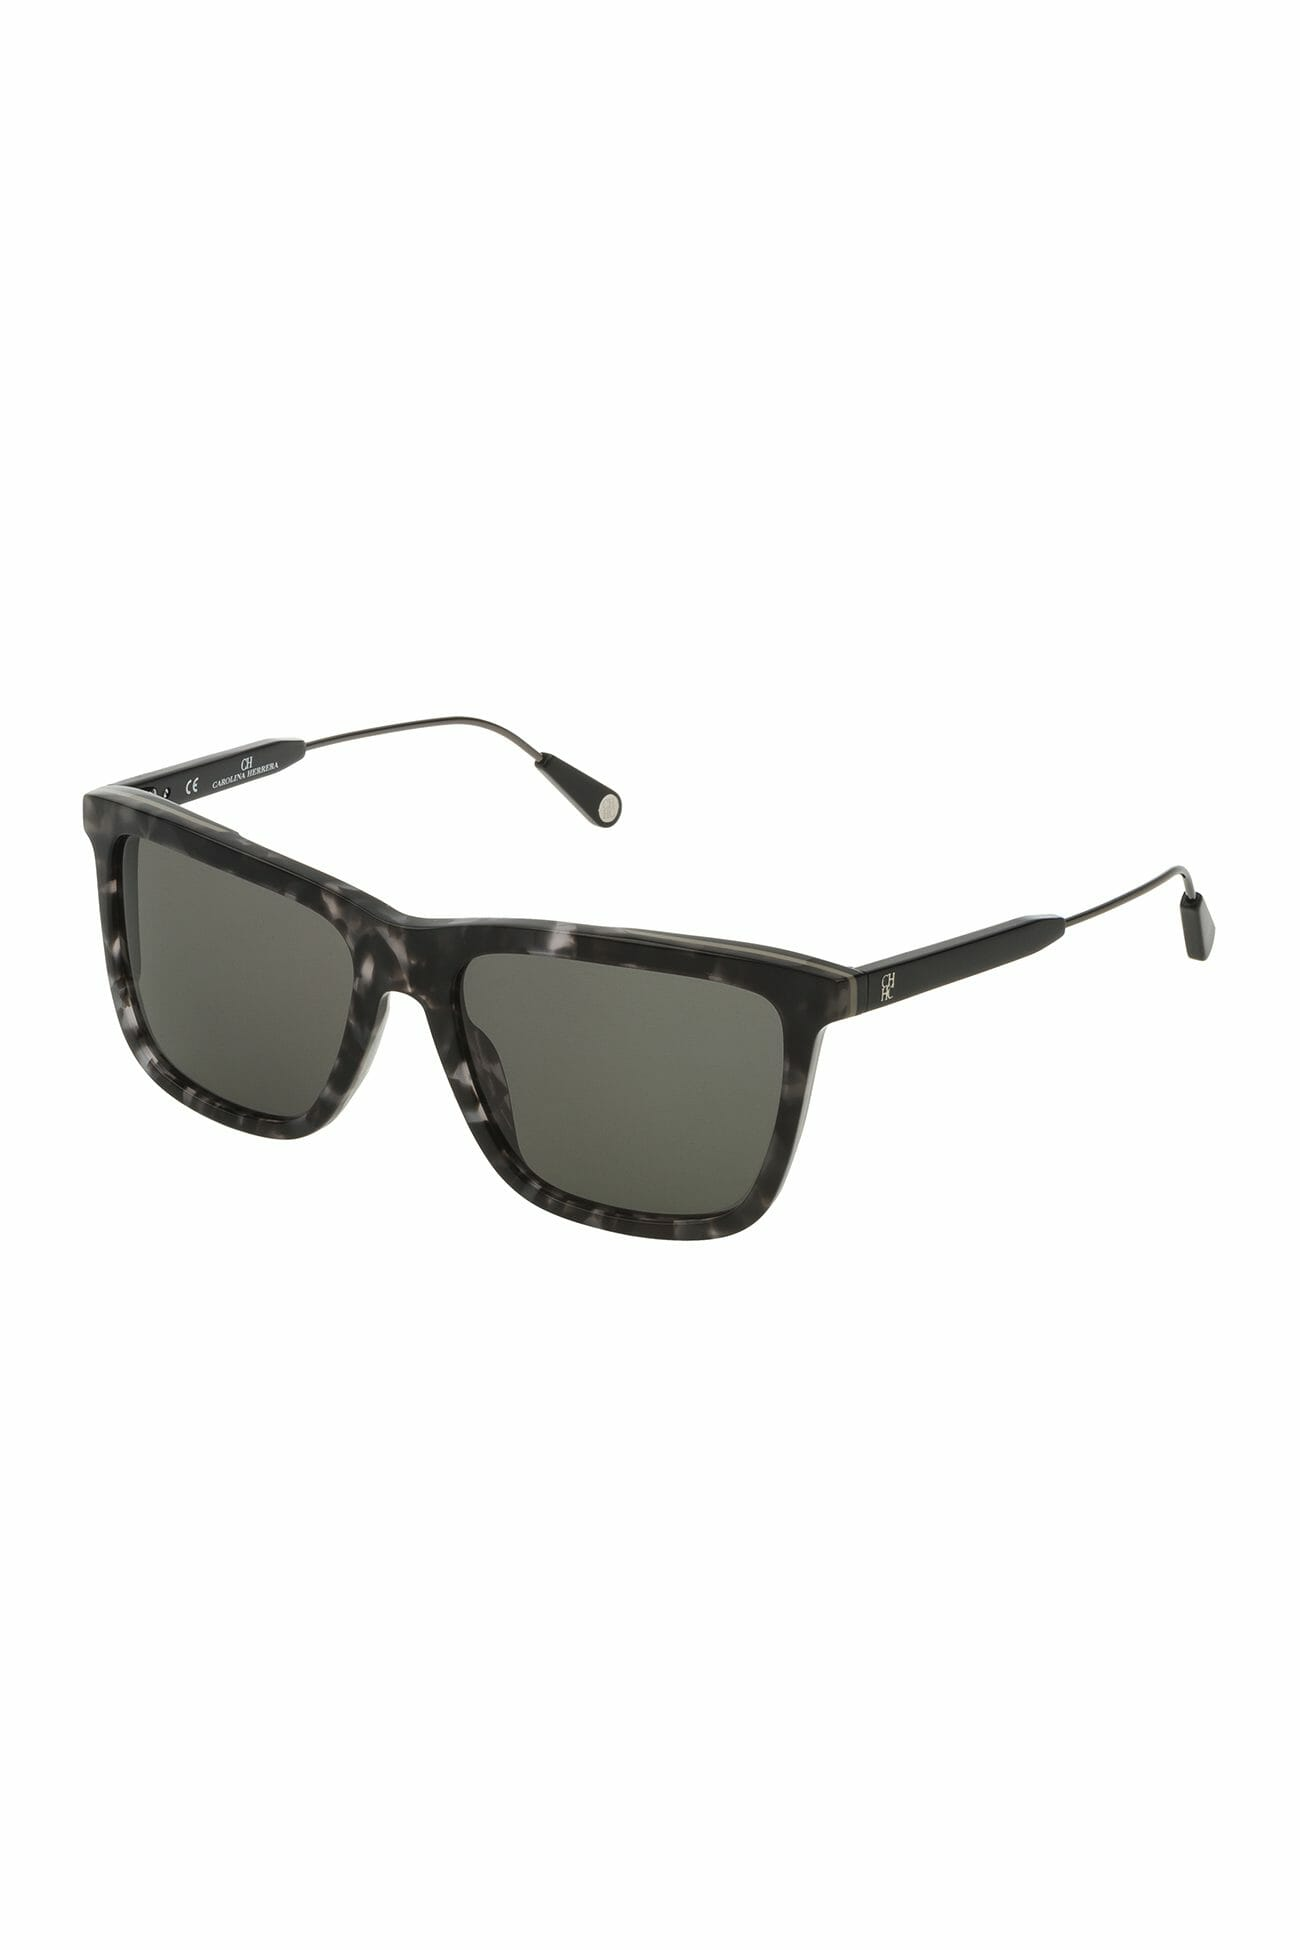 CH-Carolina-Herrera-Eyewear-Men